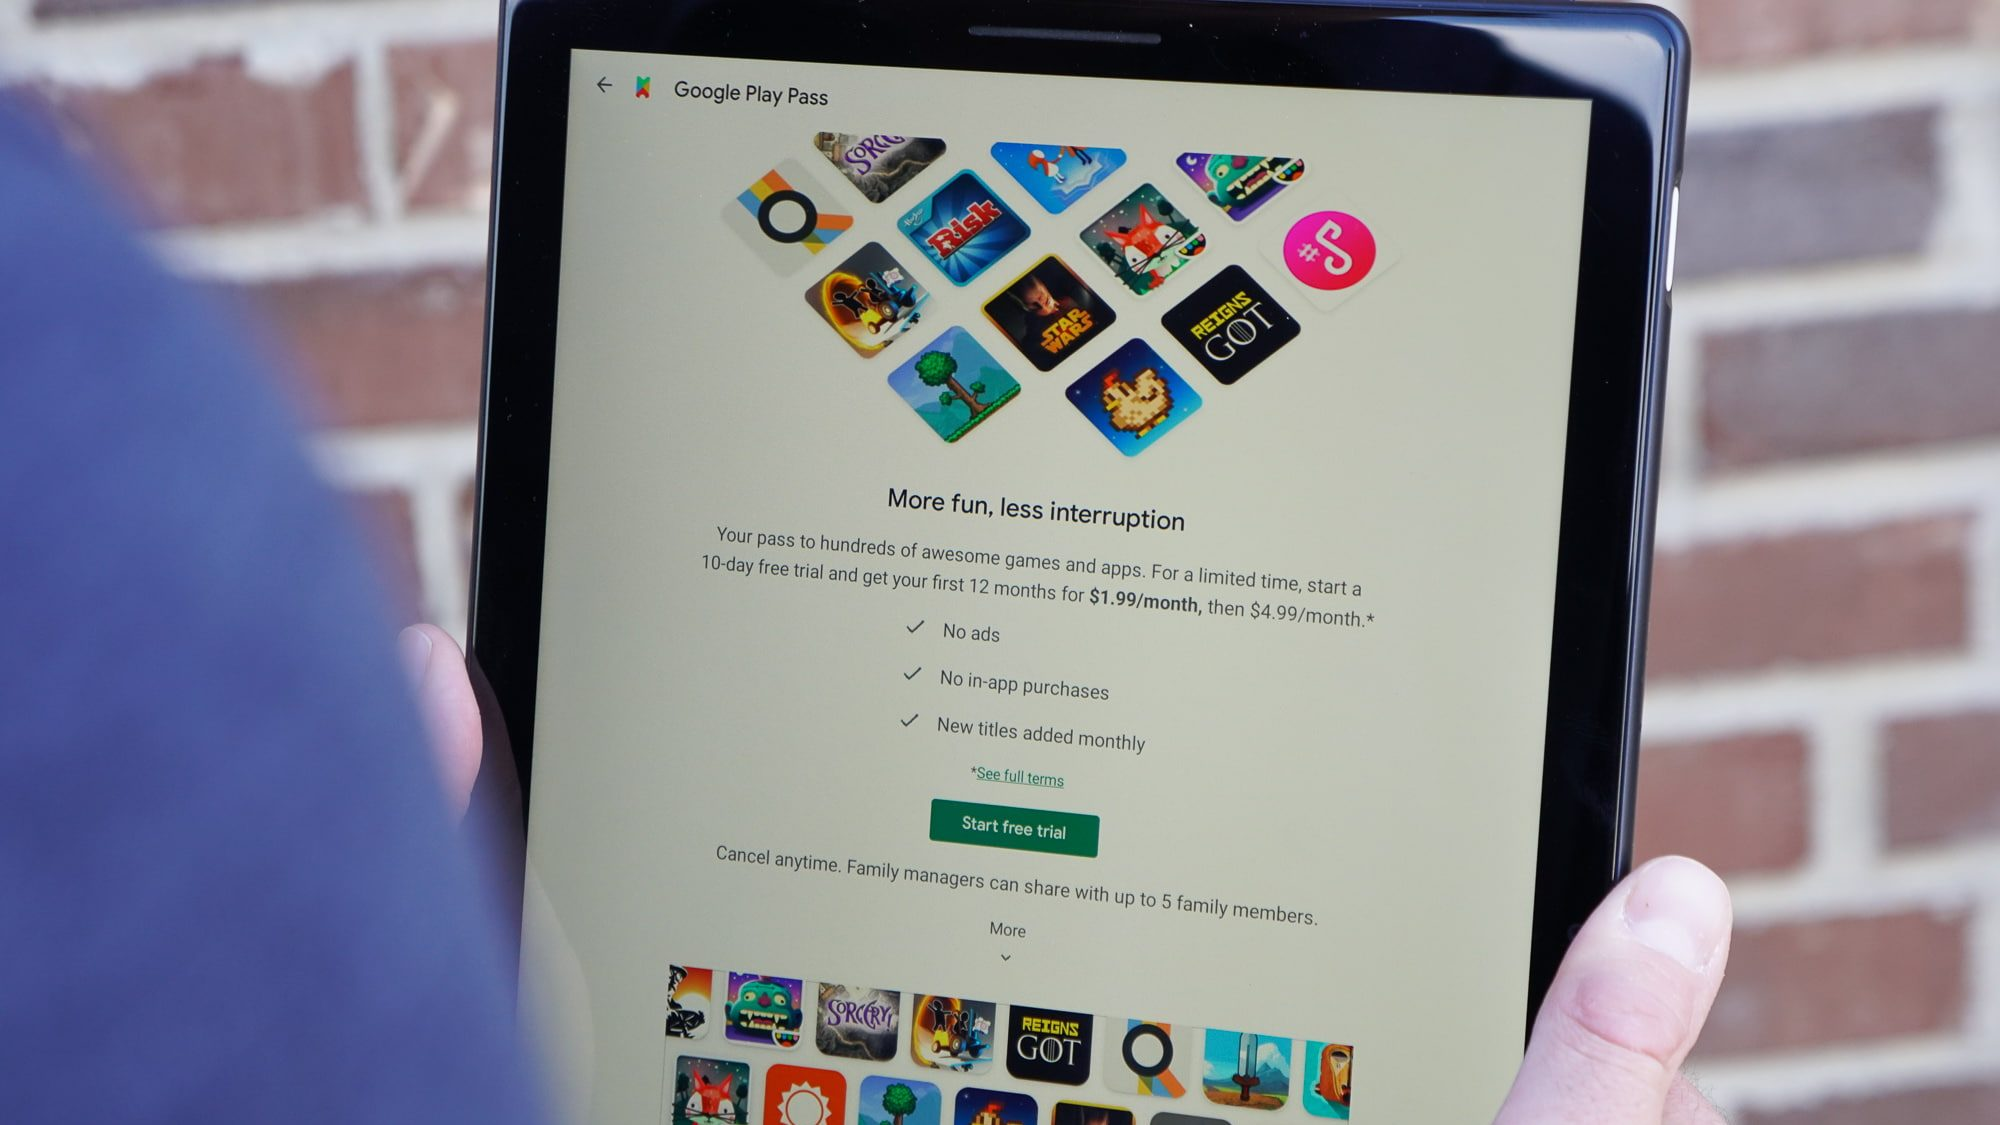 Google launches Play Pass app subscription: hundreds of games and apps for $1.99 a month